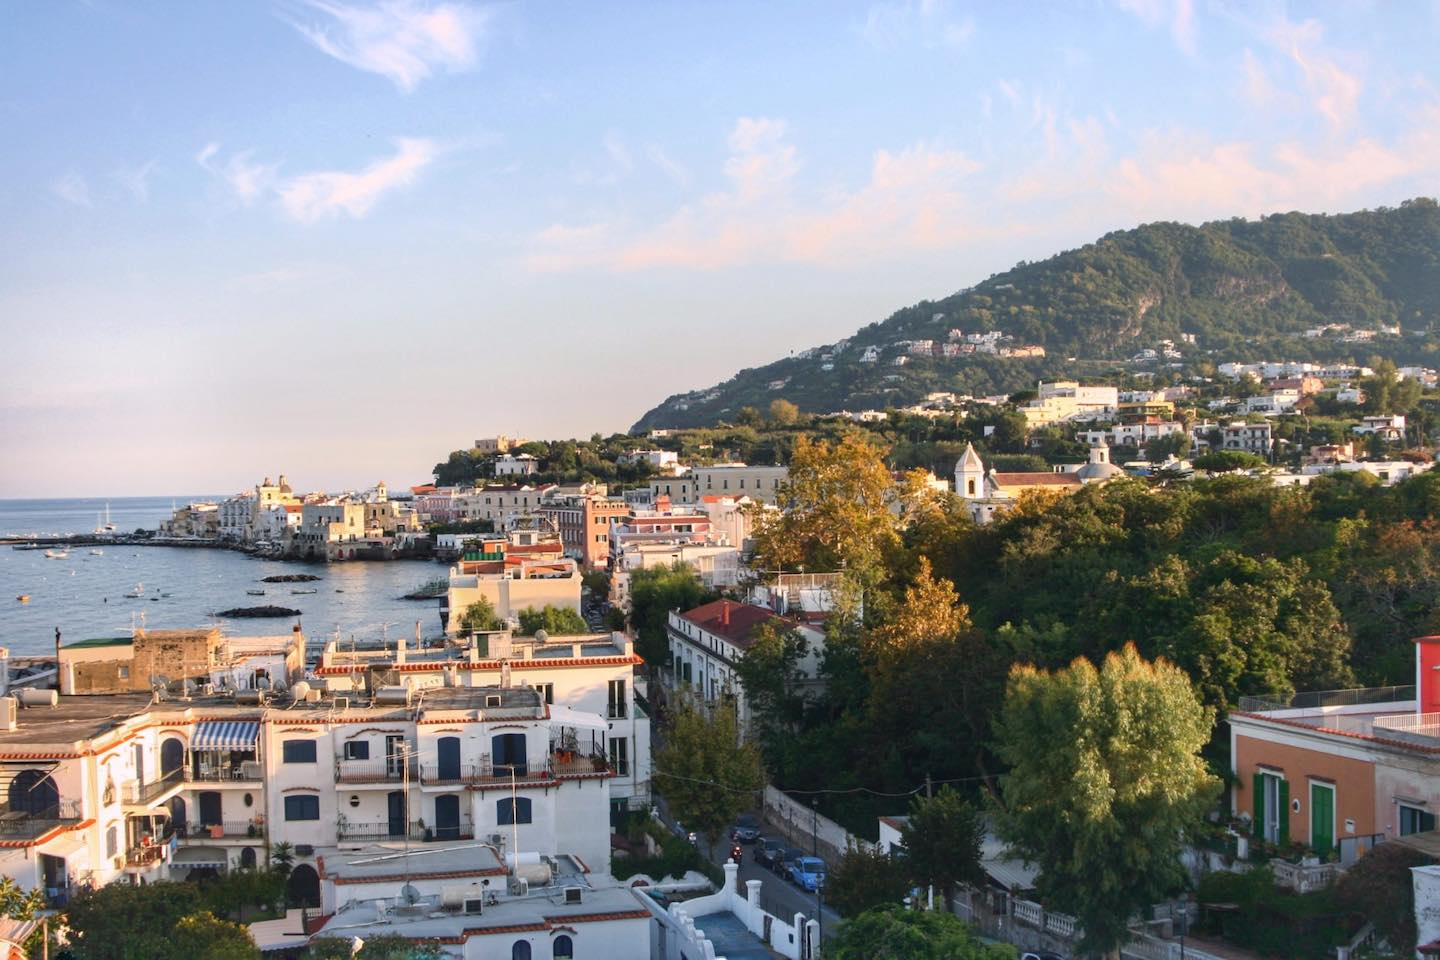 View of Ischia town | Image © ExpatAlli.com